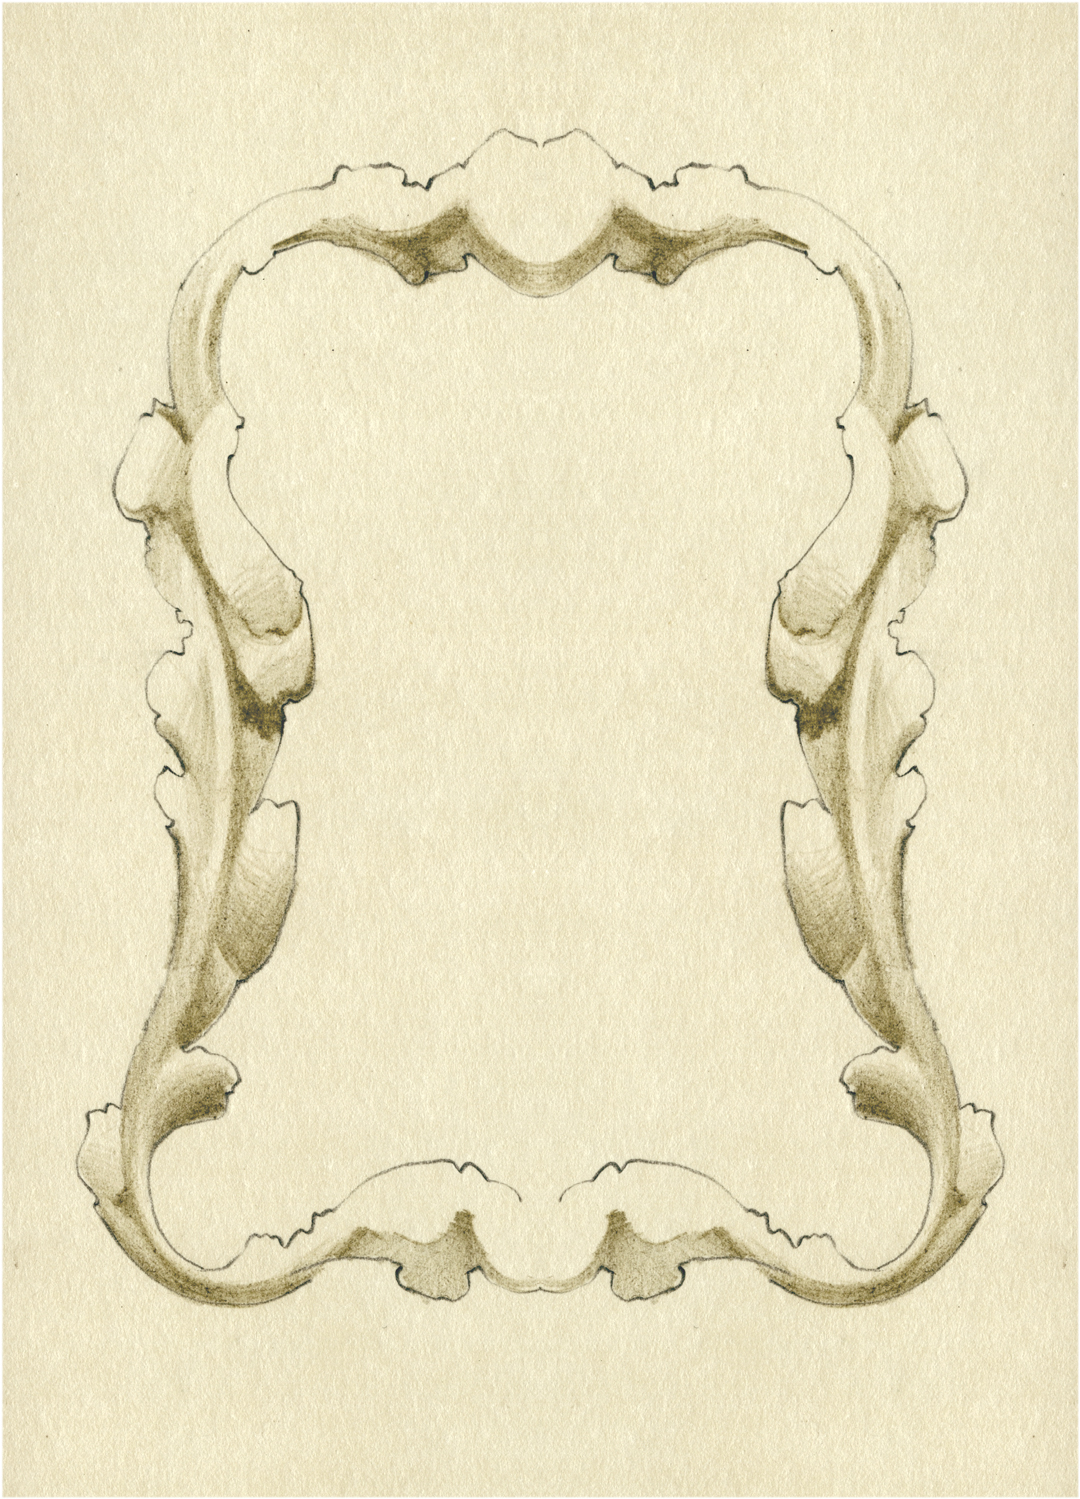 Ornate rococo frame design, drawn by Laura Dreyer